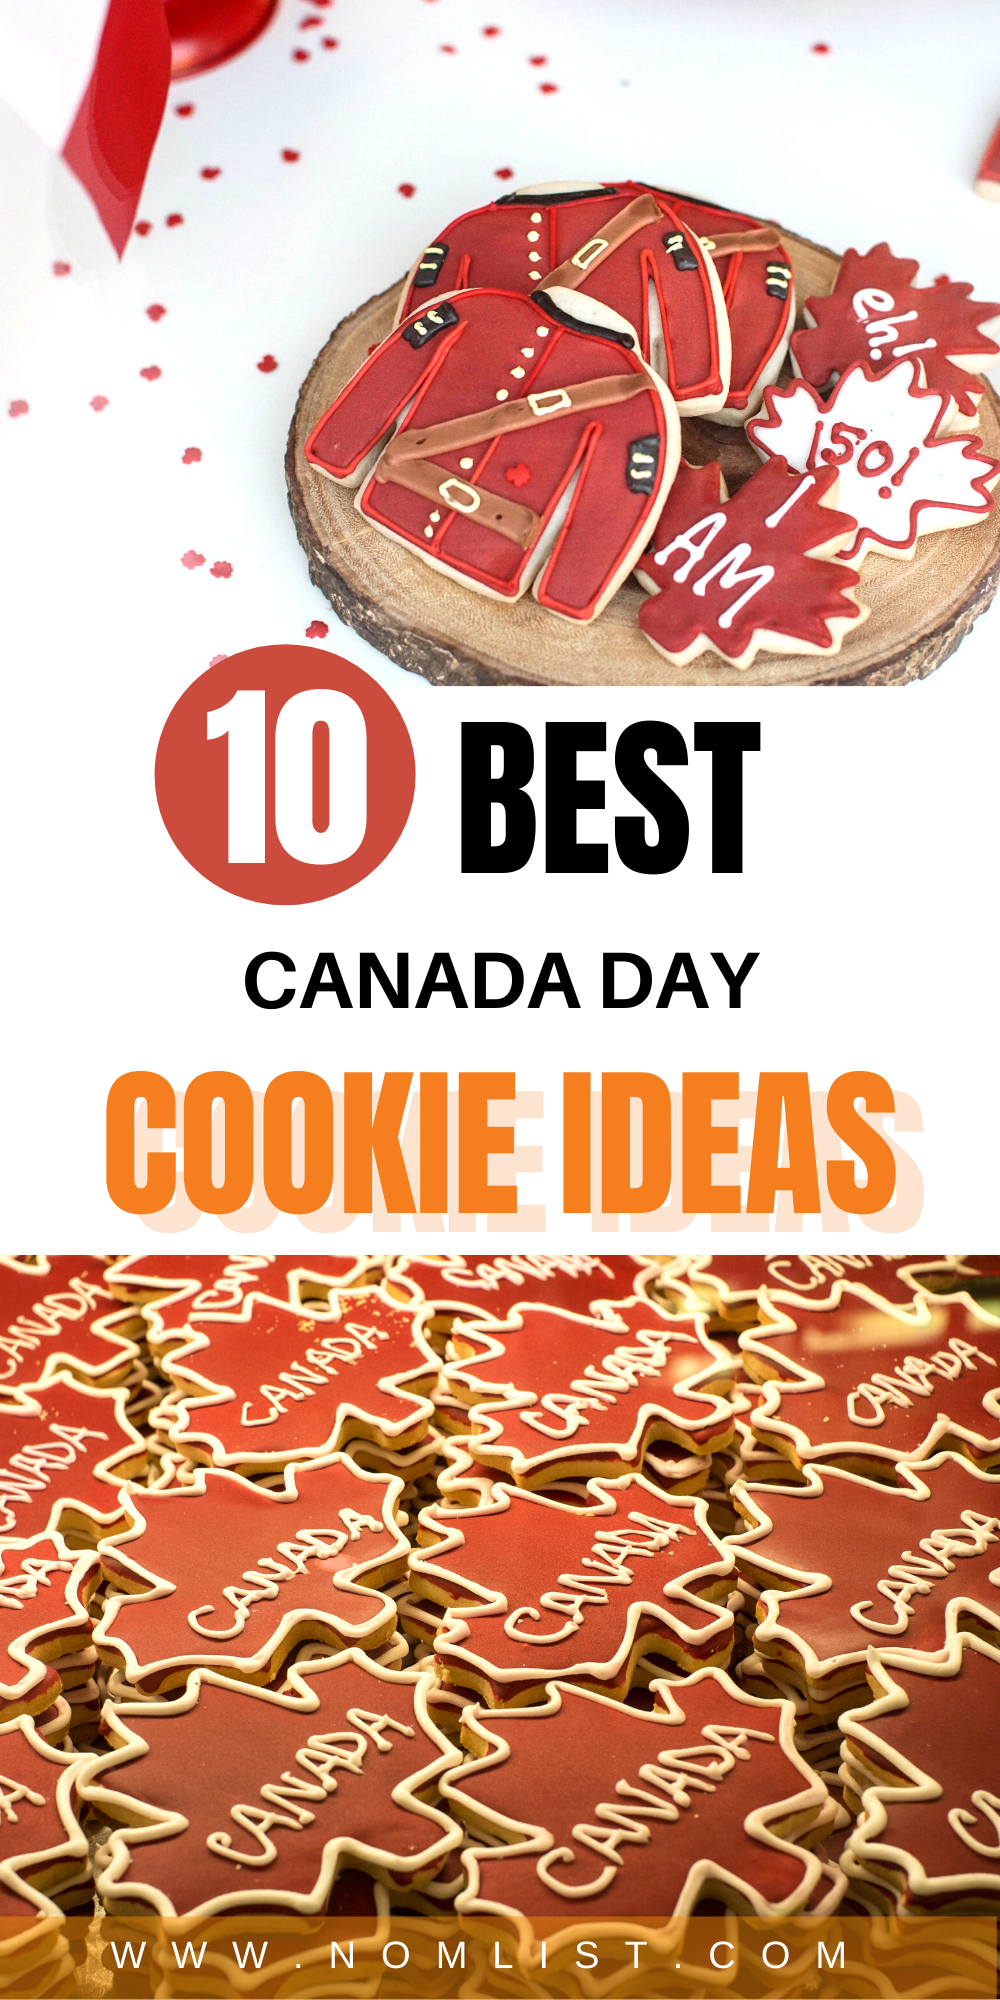 Candians, it's time to celebrate Canada Day the right way! These incredible cookie decorating ideas and recipes are sure to show-stop on your favorite holiday. See which Canada Day Cookies made the top list!